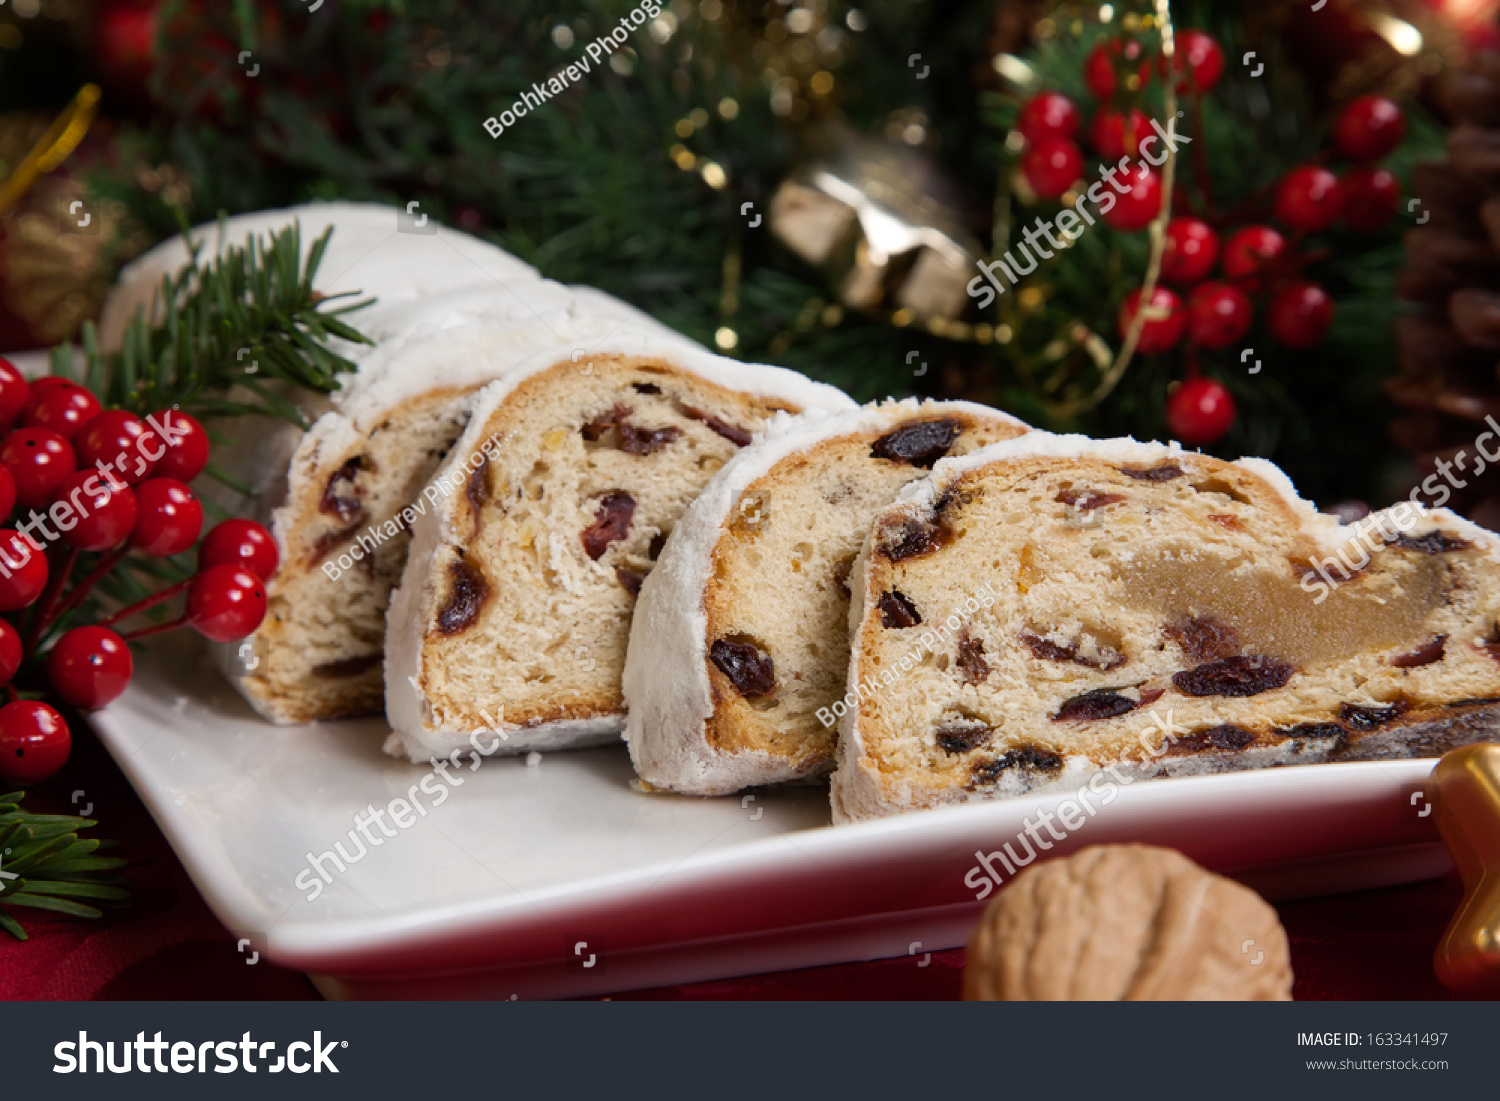 Traditional German Christmas Cake Cranberry Stollen Stock Photo ...